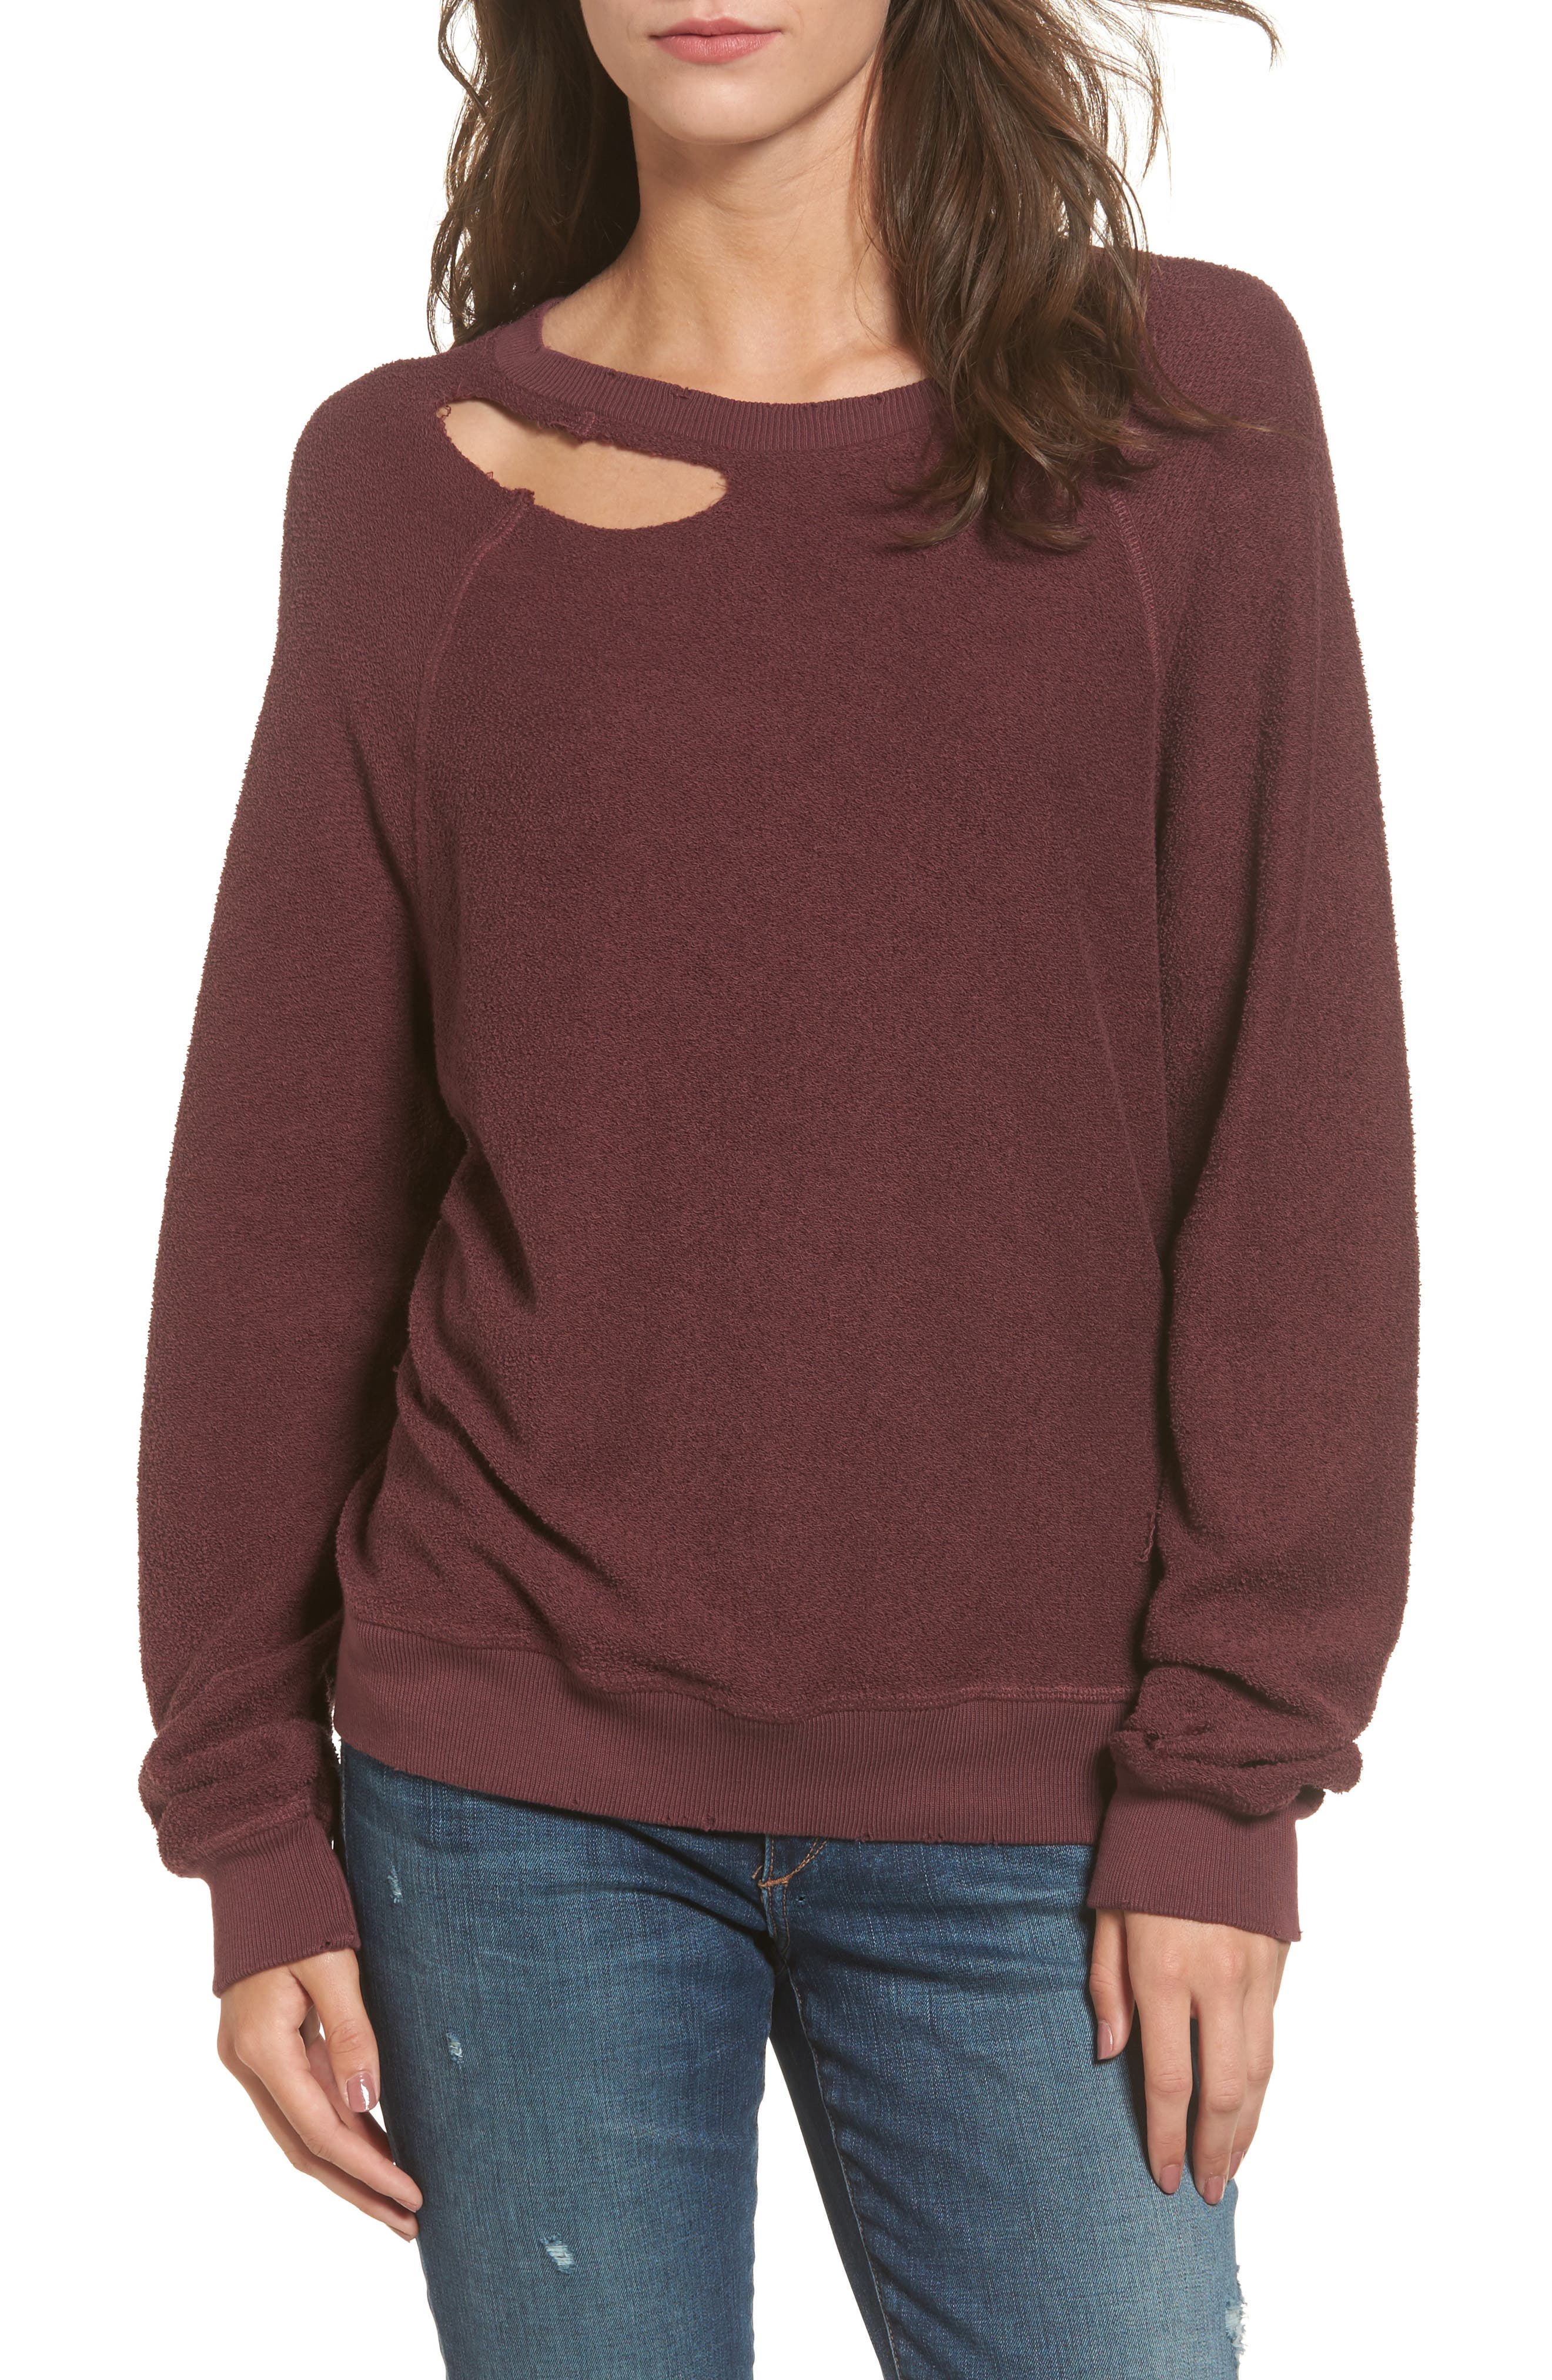 Holden Reverse Distressed Sweatshirt,                         Main,                         color, 930